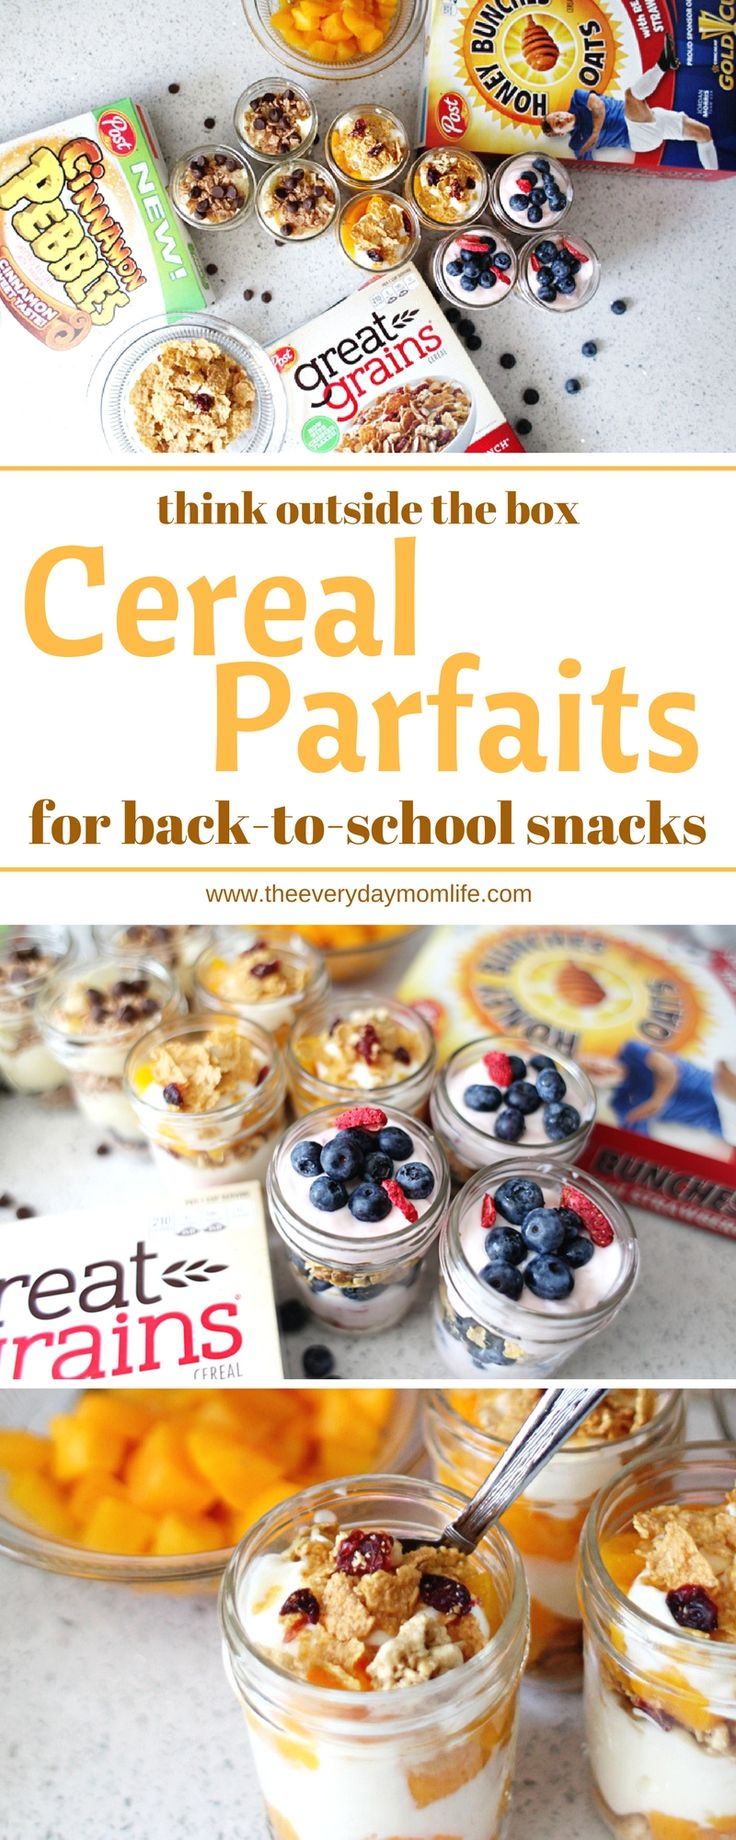 Think outside the cereal box for after school snacks. With back to school around the corner make sure you have a stockpile of cereal to make these delicious cereal parfaits for your kids to snack on! AD #StockUpWithPost #CerealAnytime #CollectiveBias